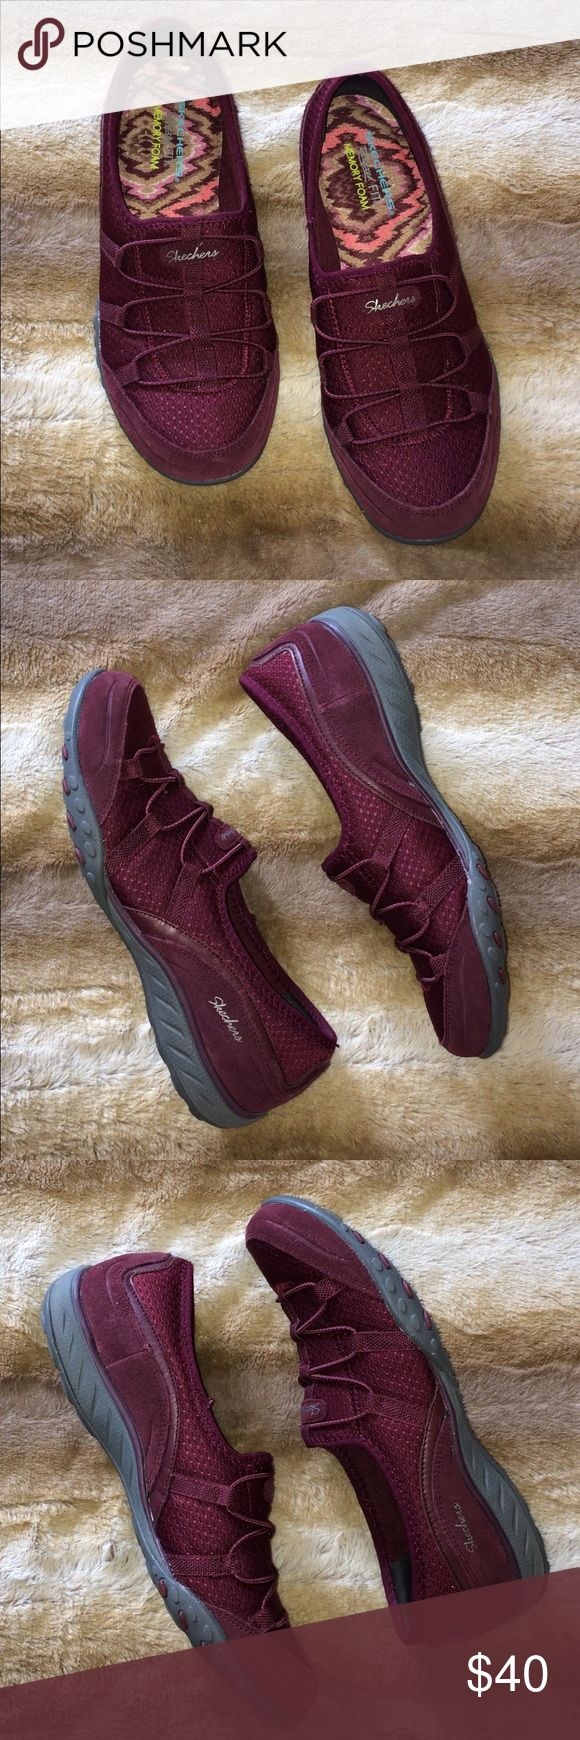 Sketchers Sneakers Relaxed fit. Memory Foam. Leather/textile upper. Color is Burgundy.  Wore once. Like new condition. Skechers Shoes Sneakers